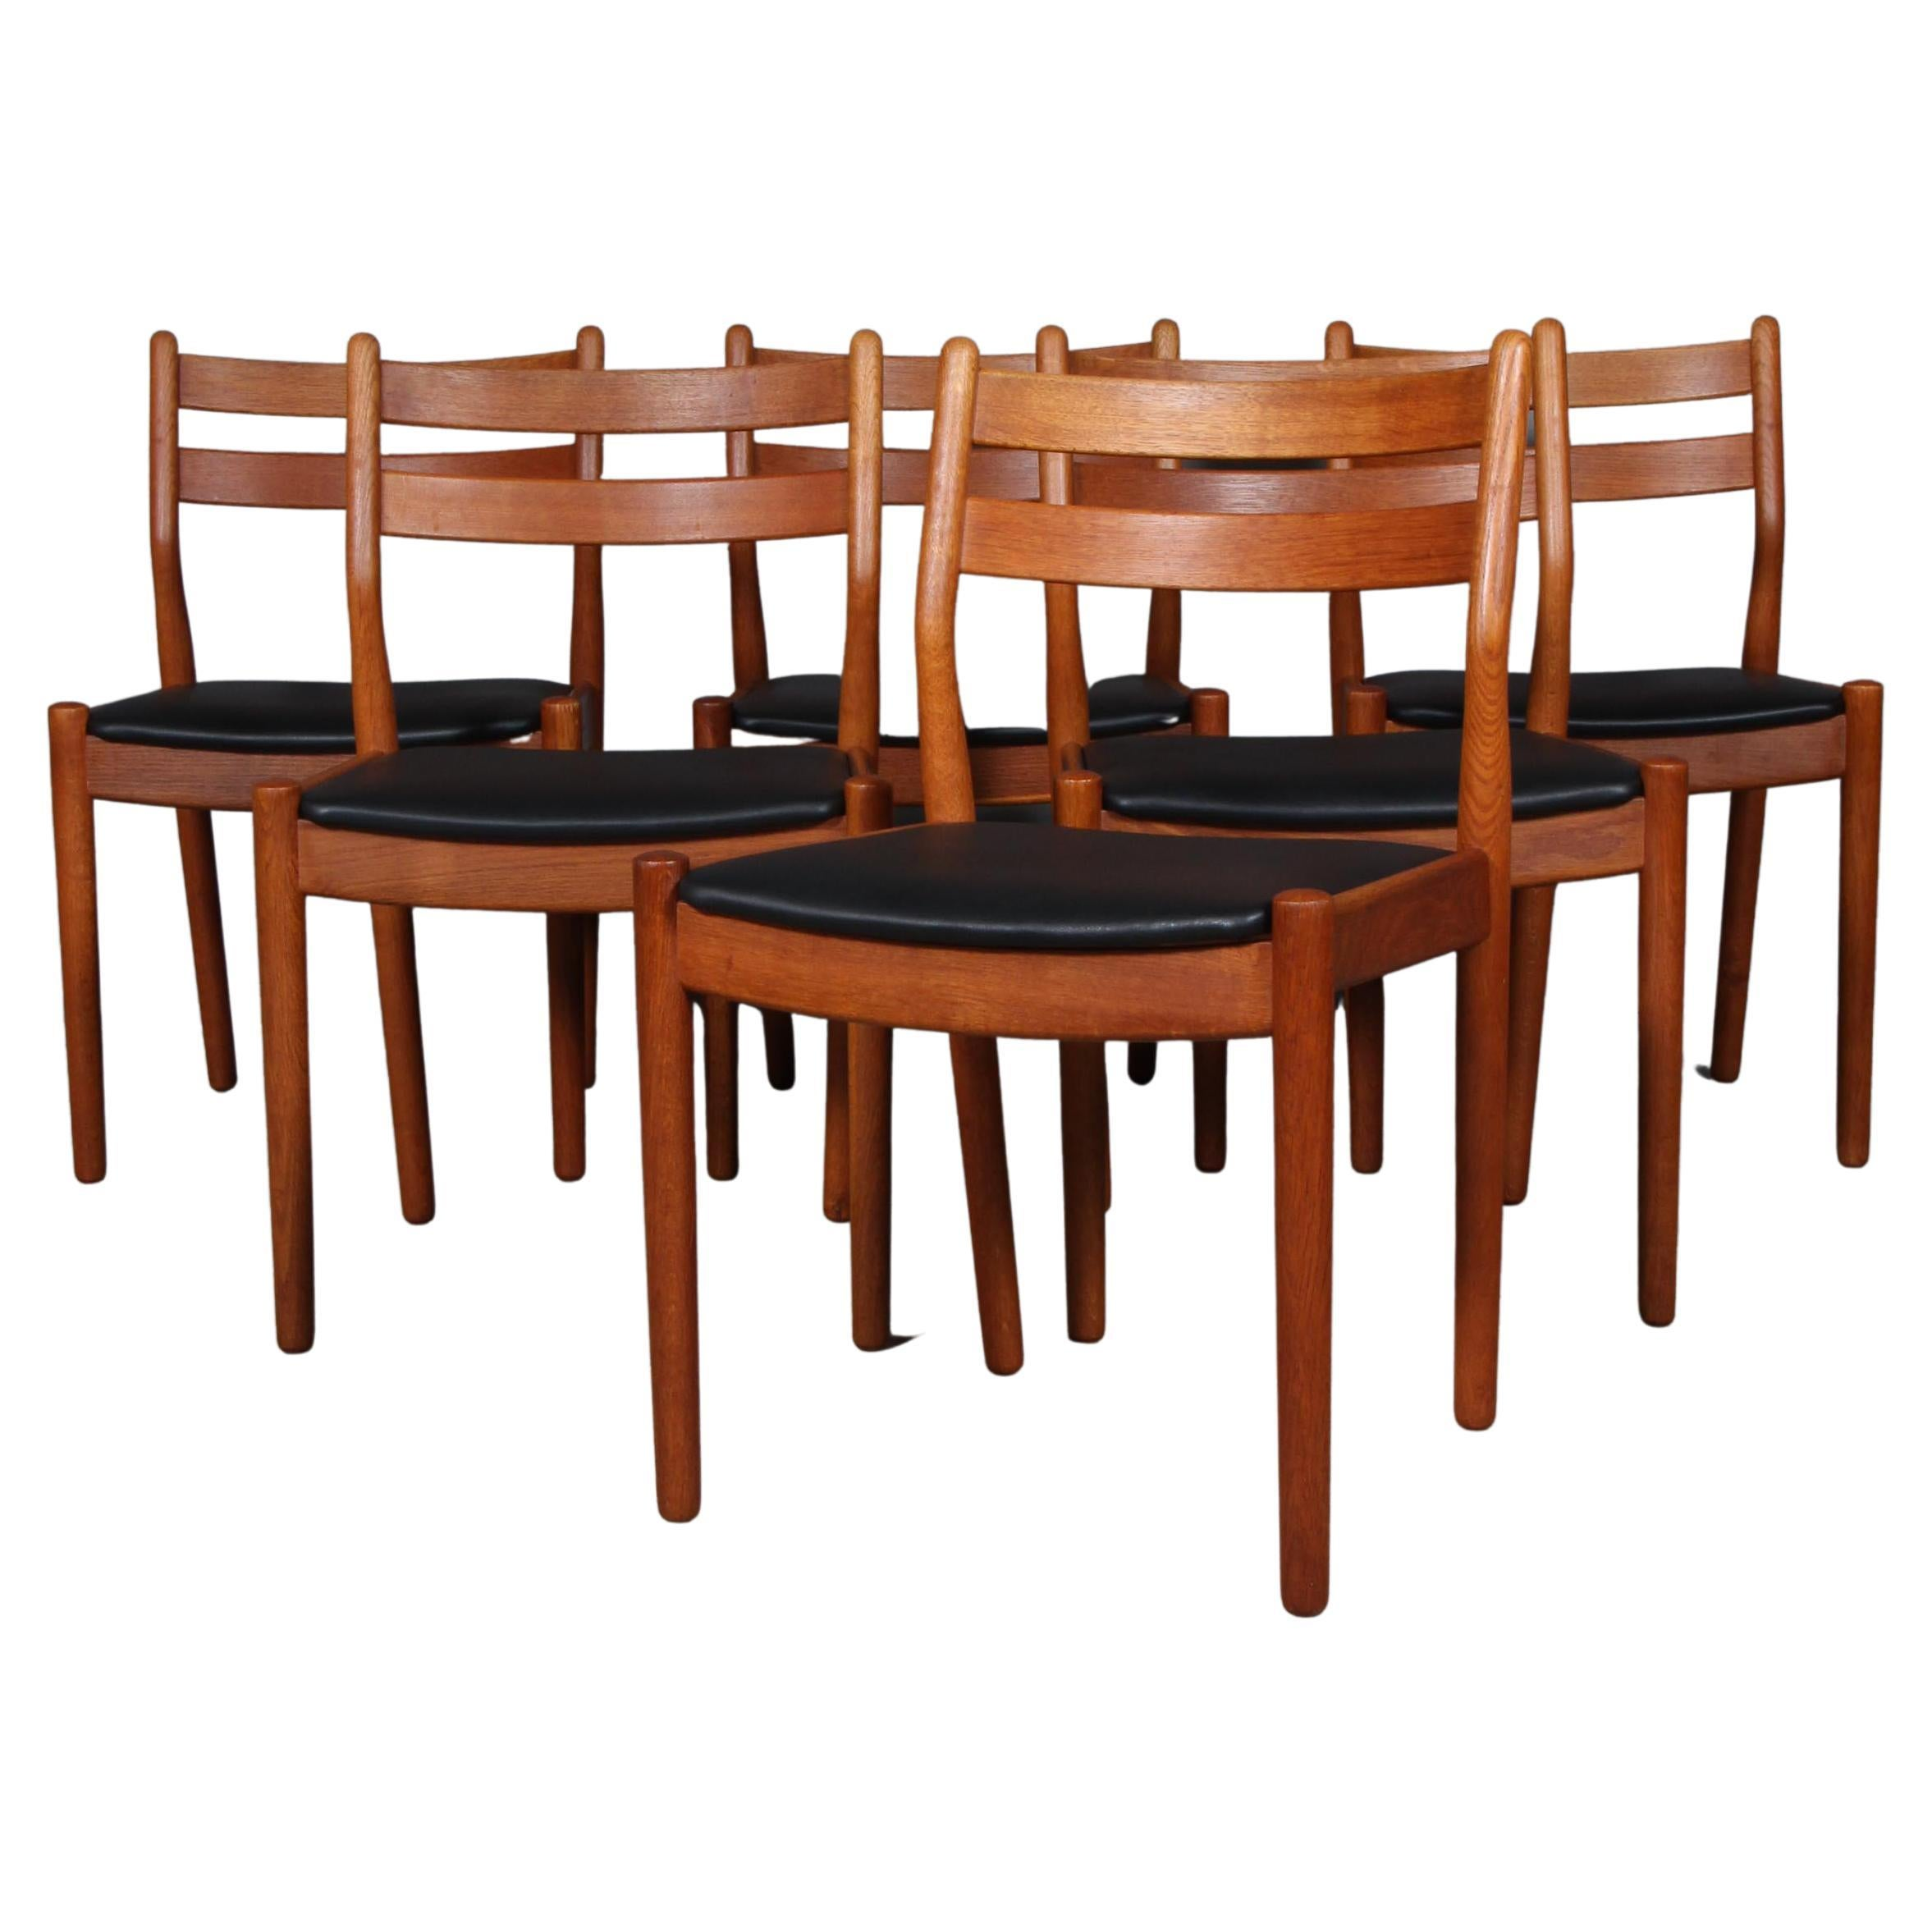 Set of Six Dining Chairs by Poul Volther, Oak and Leather